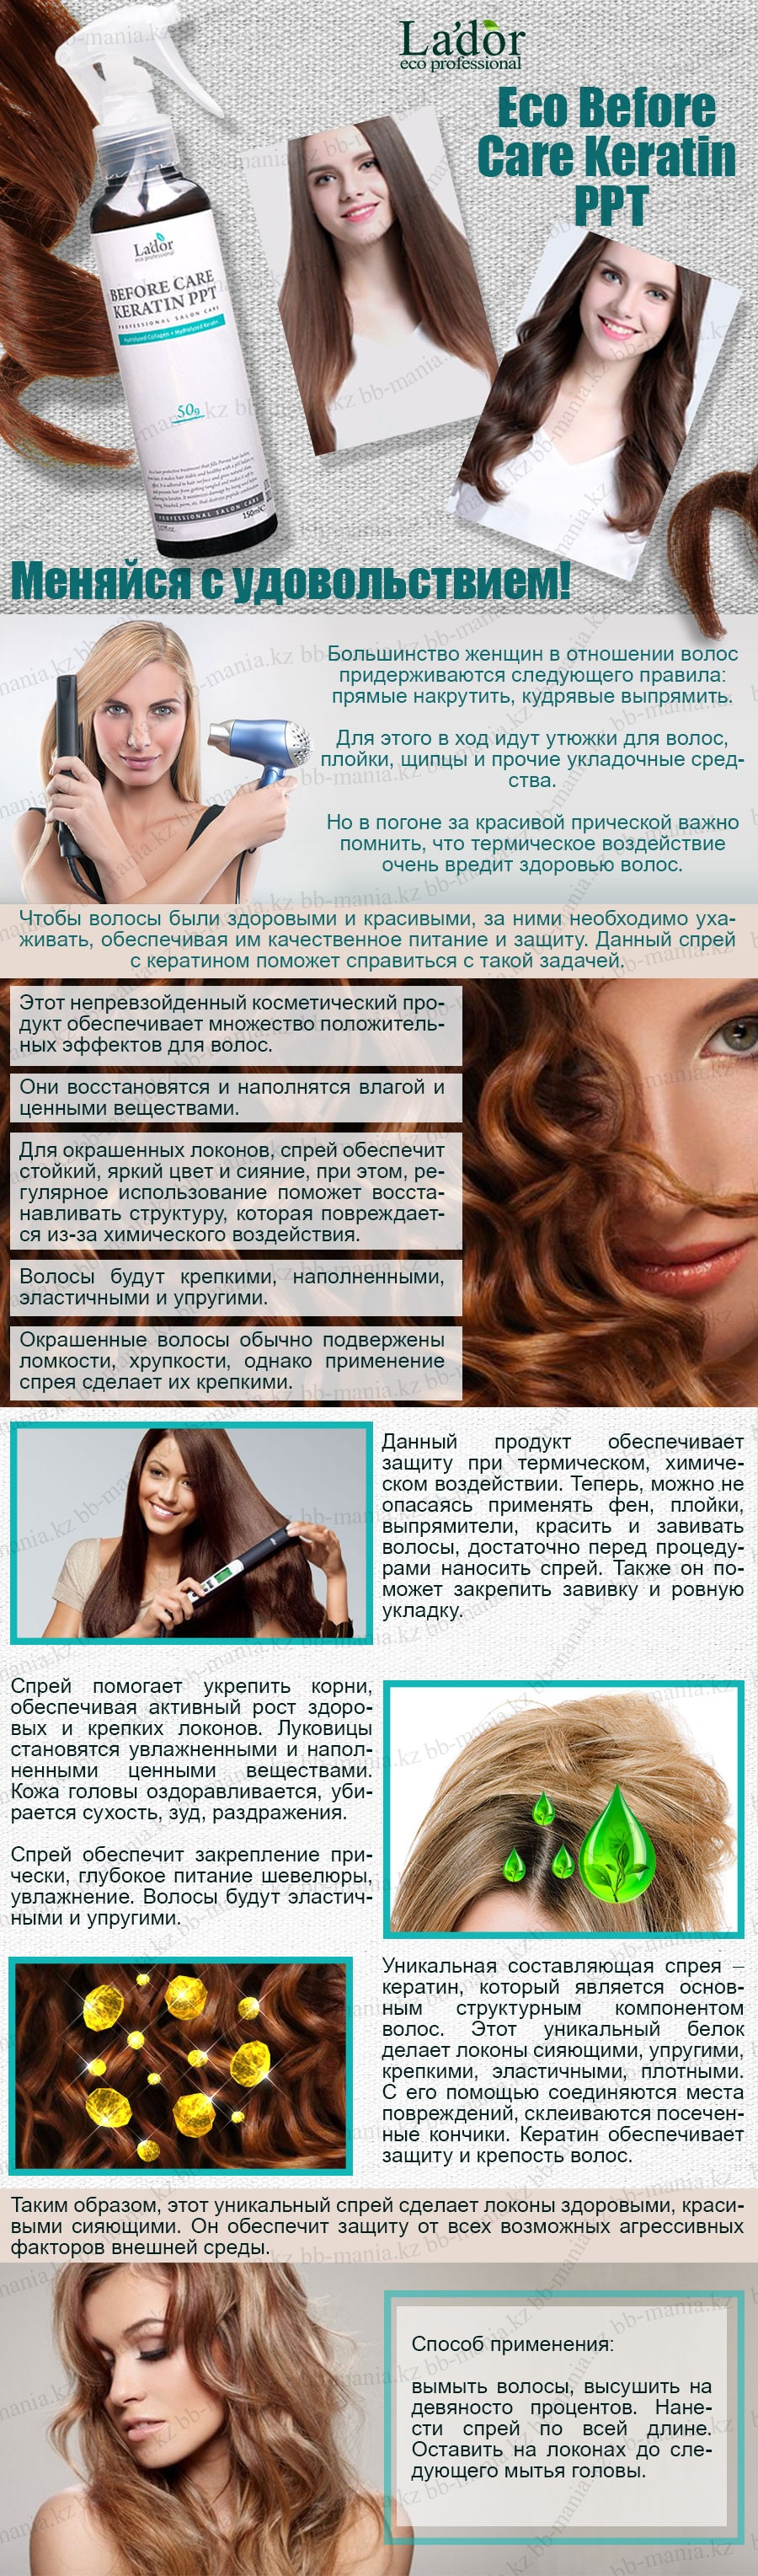 Eco-Before-Care-Keratin-PPT-[La'dor]-min